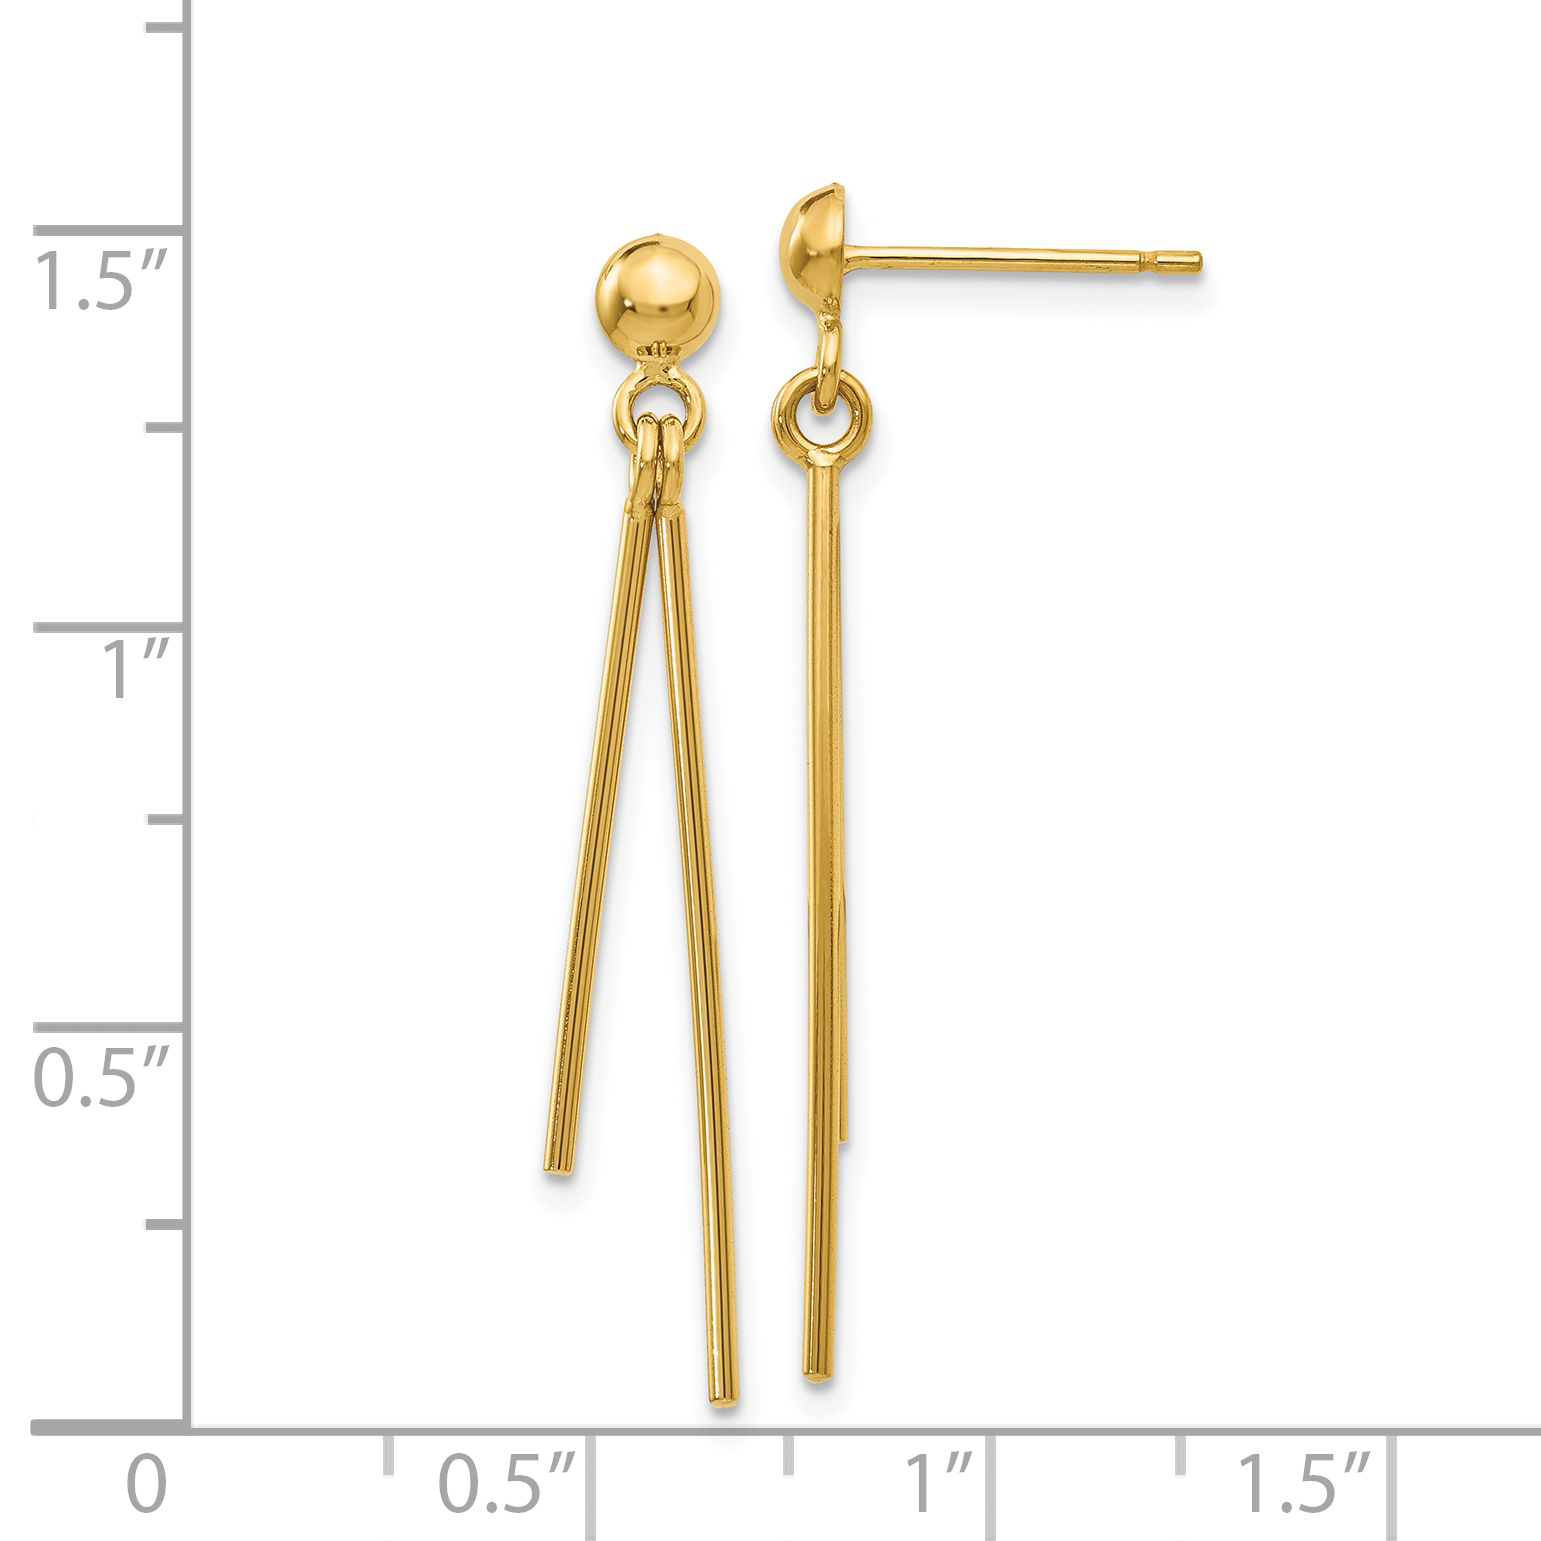 14k Yellow Gold Post Stud Drop Dangle Chandelier Earrings Fine Jewelry Gifts For Women For Her - image 2 of 3